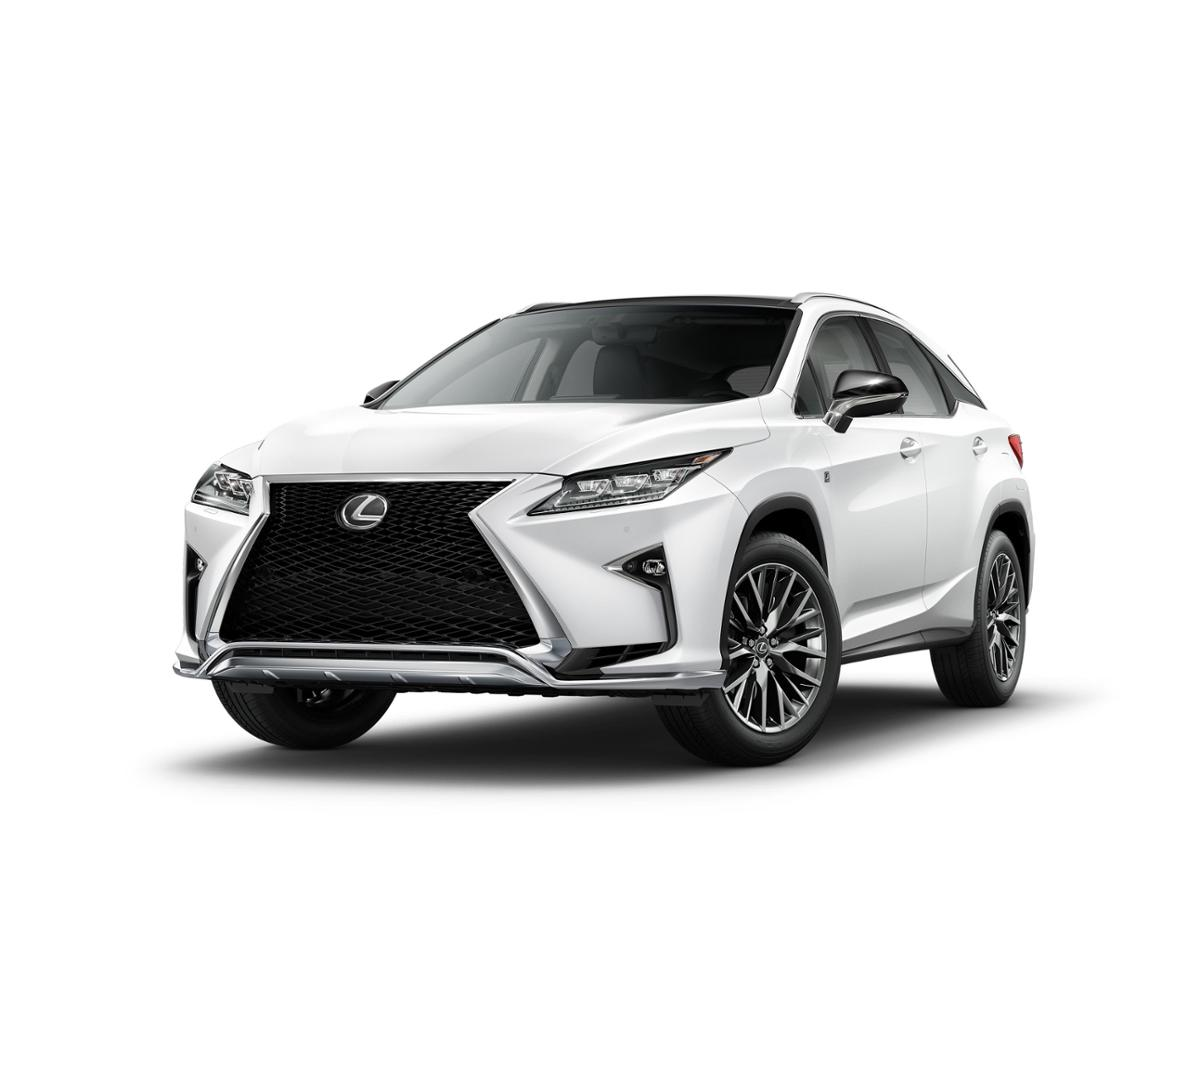 2017 Lexus Rx 350 F Sport In Ultra White For Sale In Ca 2t2zzmca3hc054785